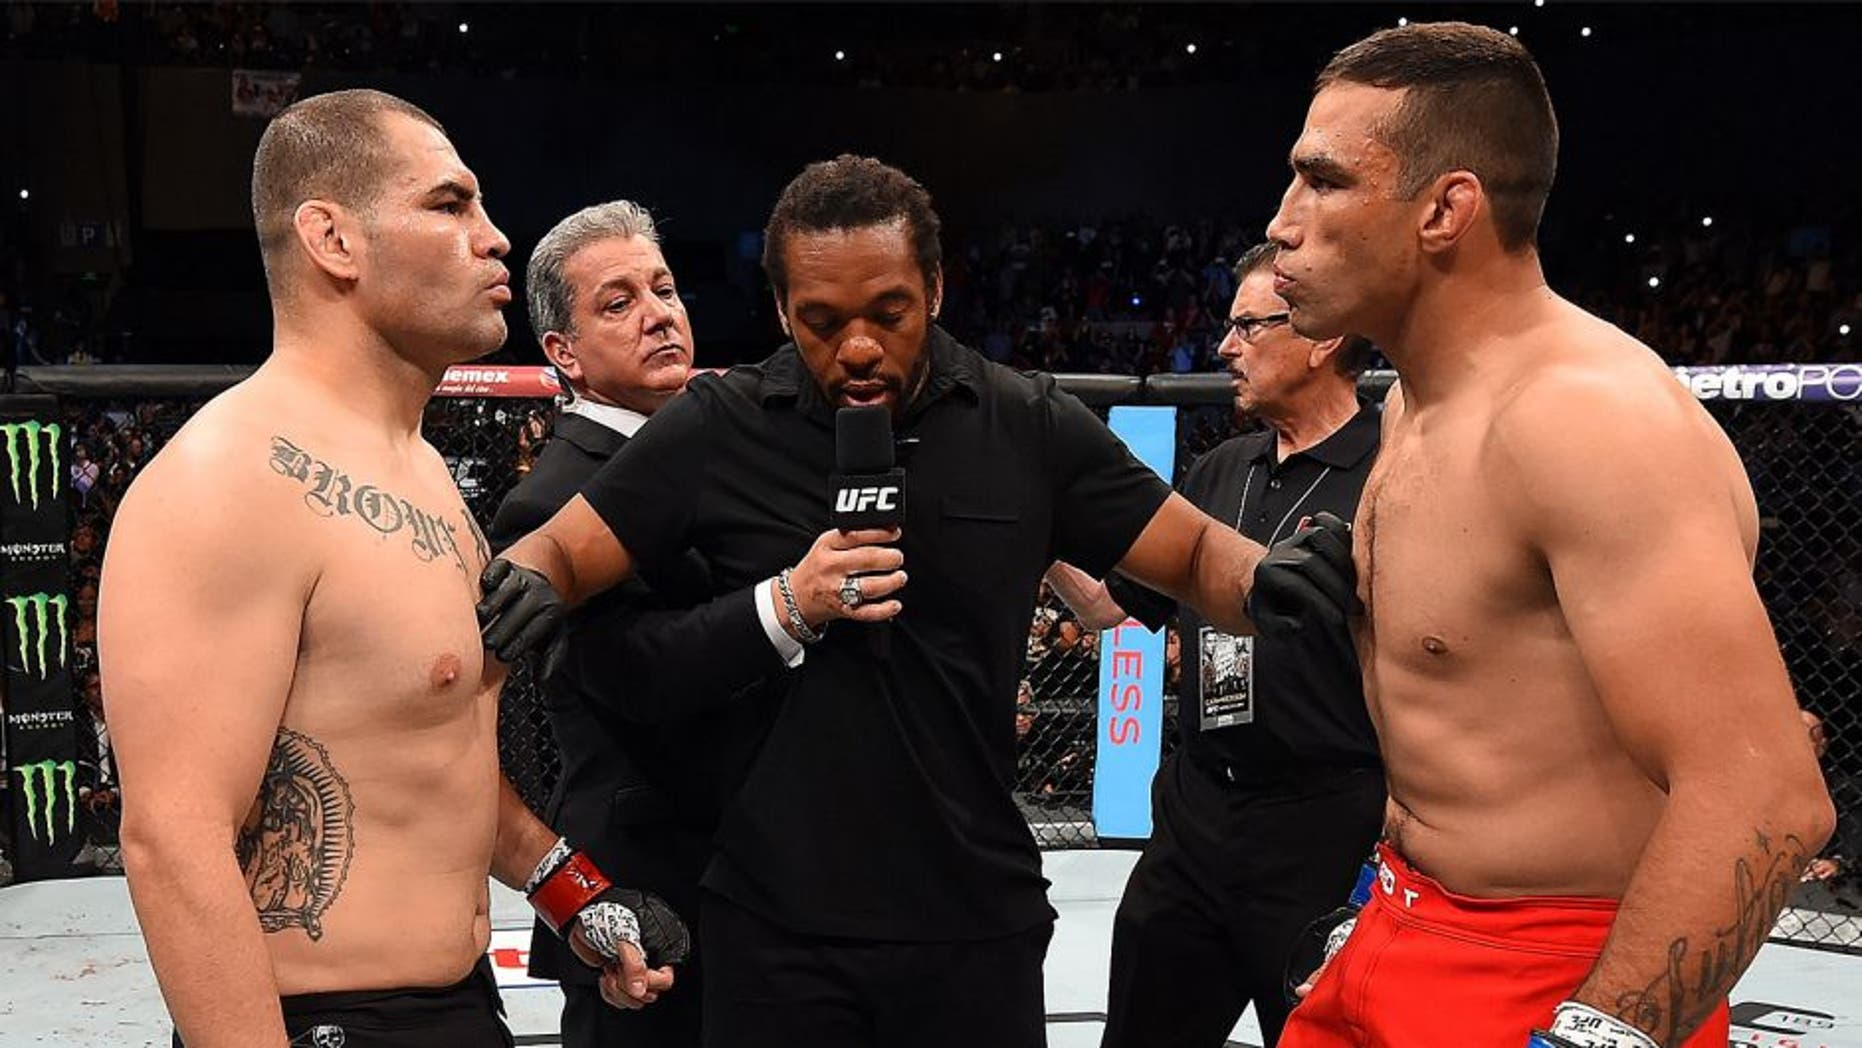 MEXICO CITY, MEXICO - JUNE 13: (L-R) Cain Velasquez of the United States and Fabricio Werdum of Brazil face off before their UFC heavyweight championship bout during the UFC 188 event inside the Arena Ciudad de Mexico on June 13, 2015 in Mexico City, Mexico. (Photo by Josh Hedges/Zuffa LLC/Zuffa LLC via Getty Images)